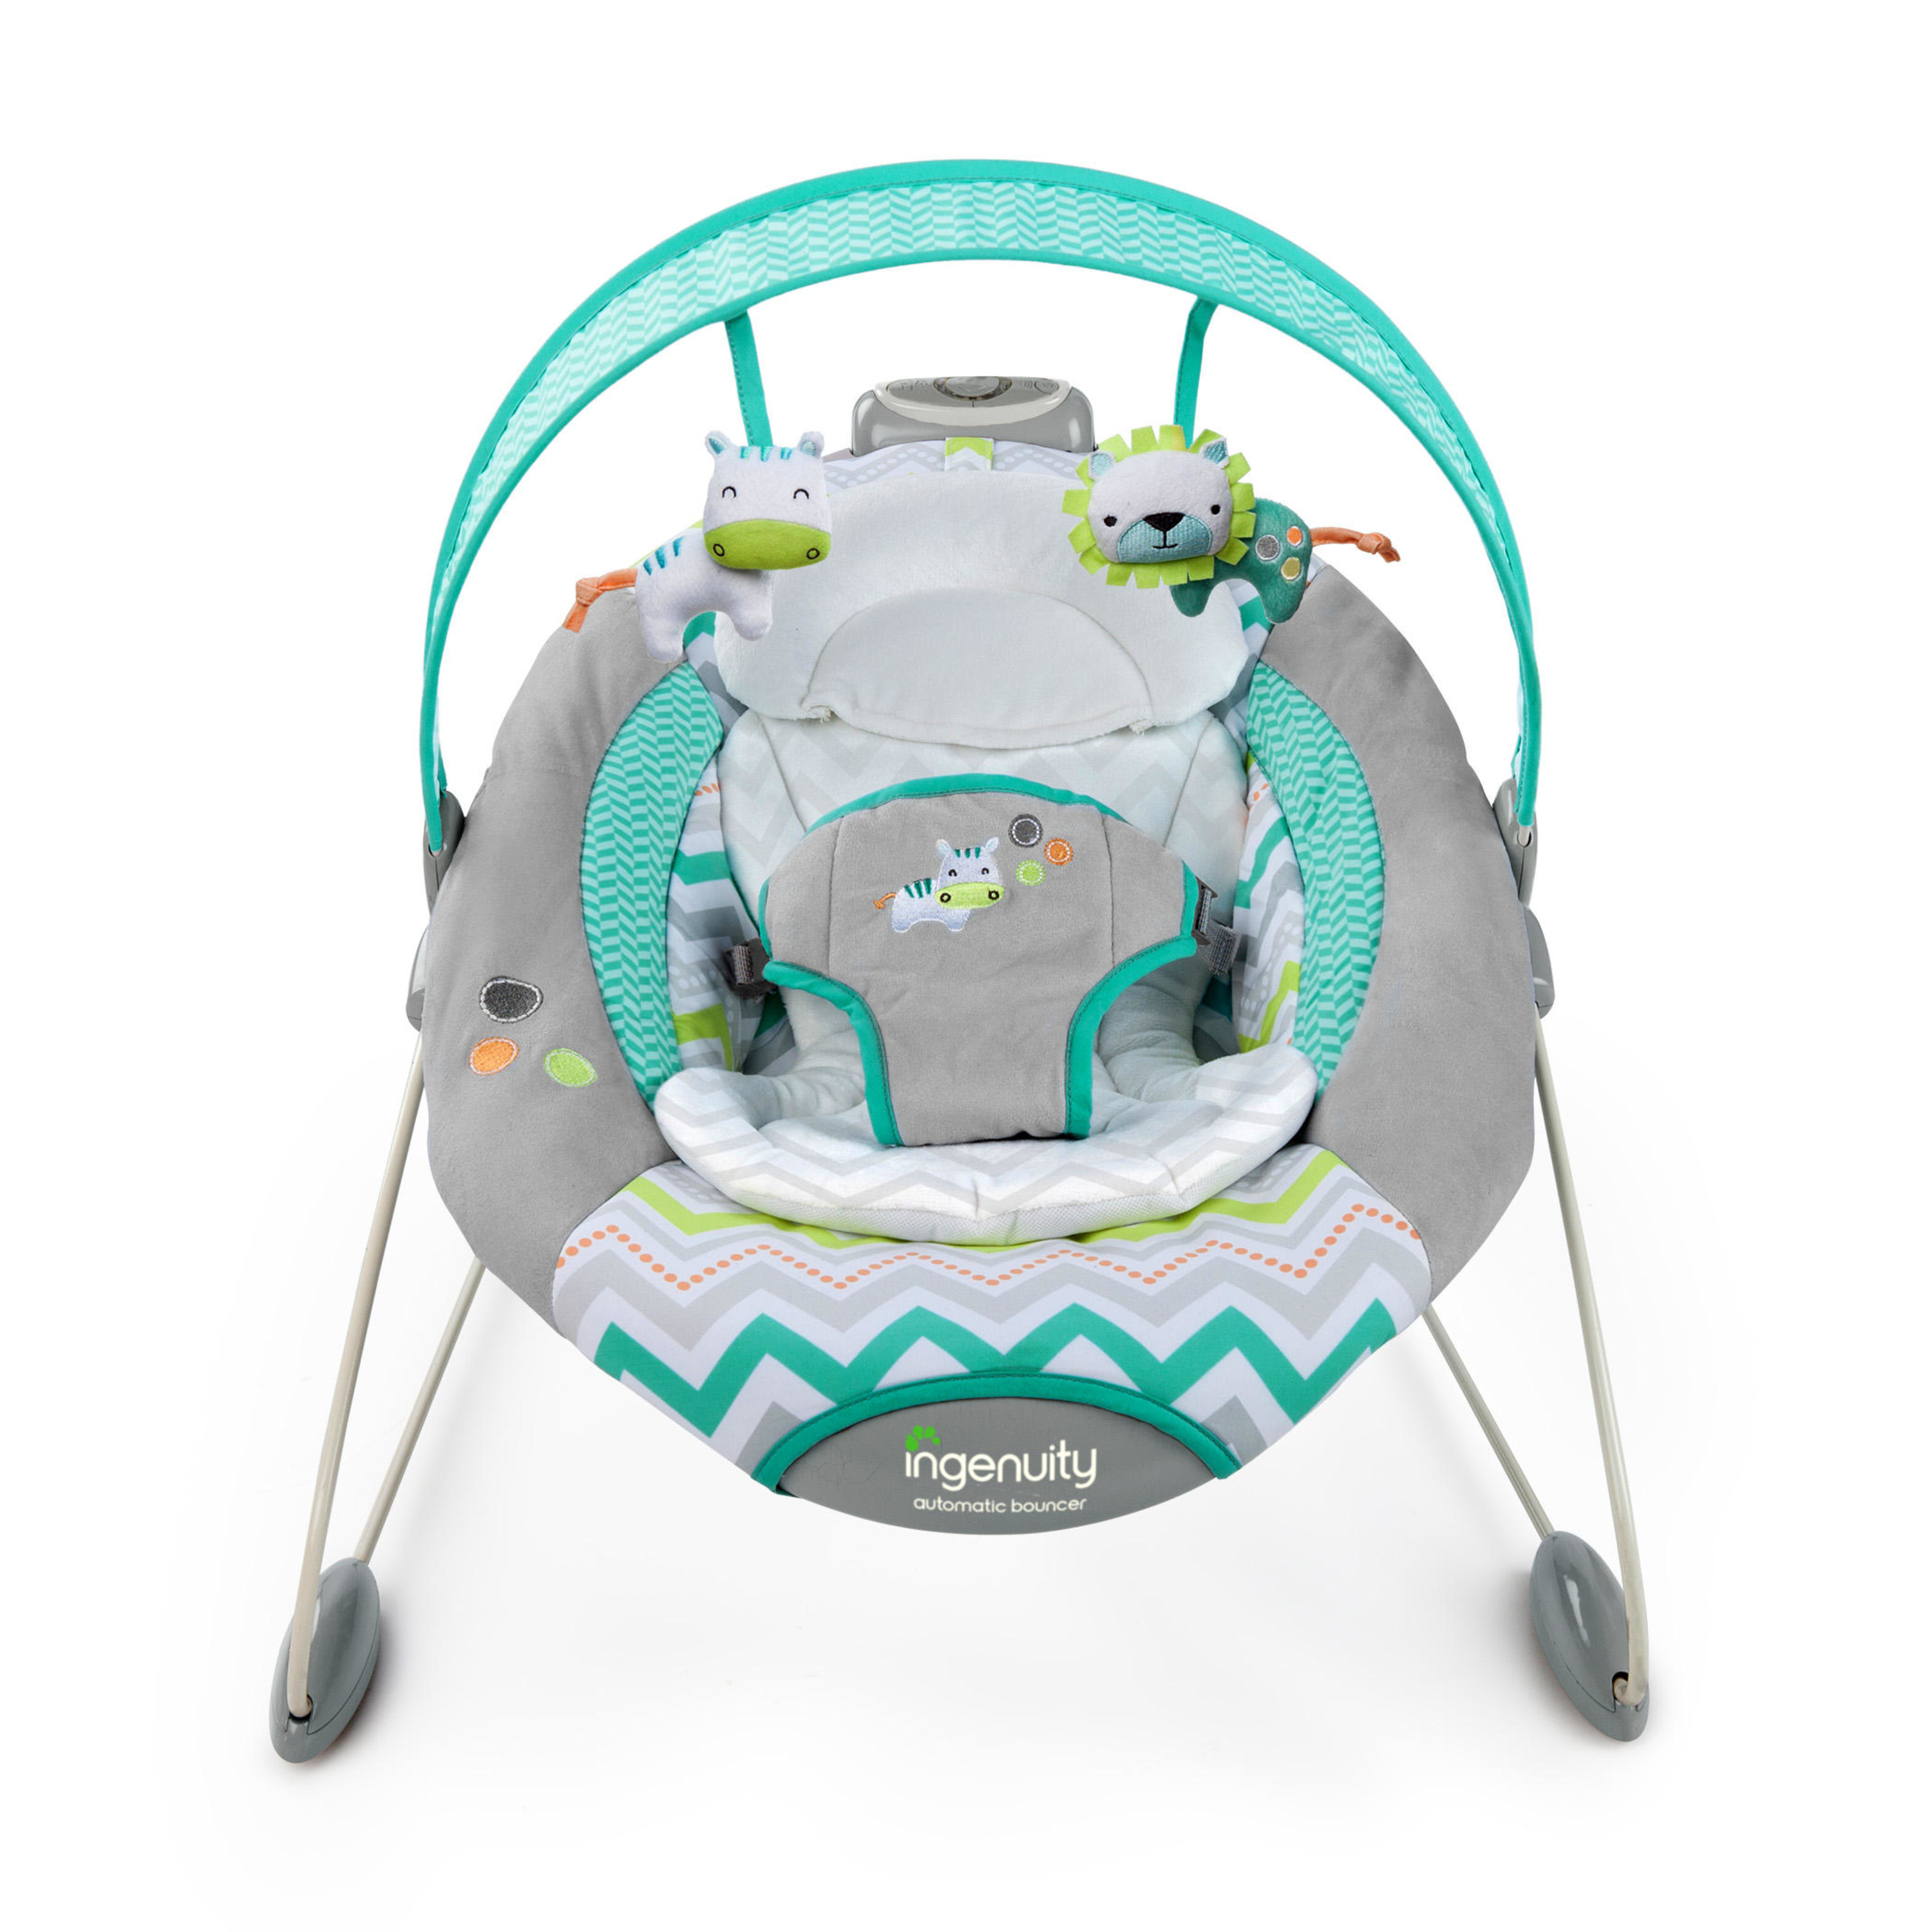 Ingenuity Ridgedale Collection Playard Swing High Chair